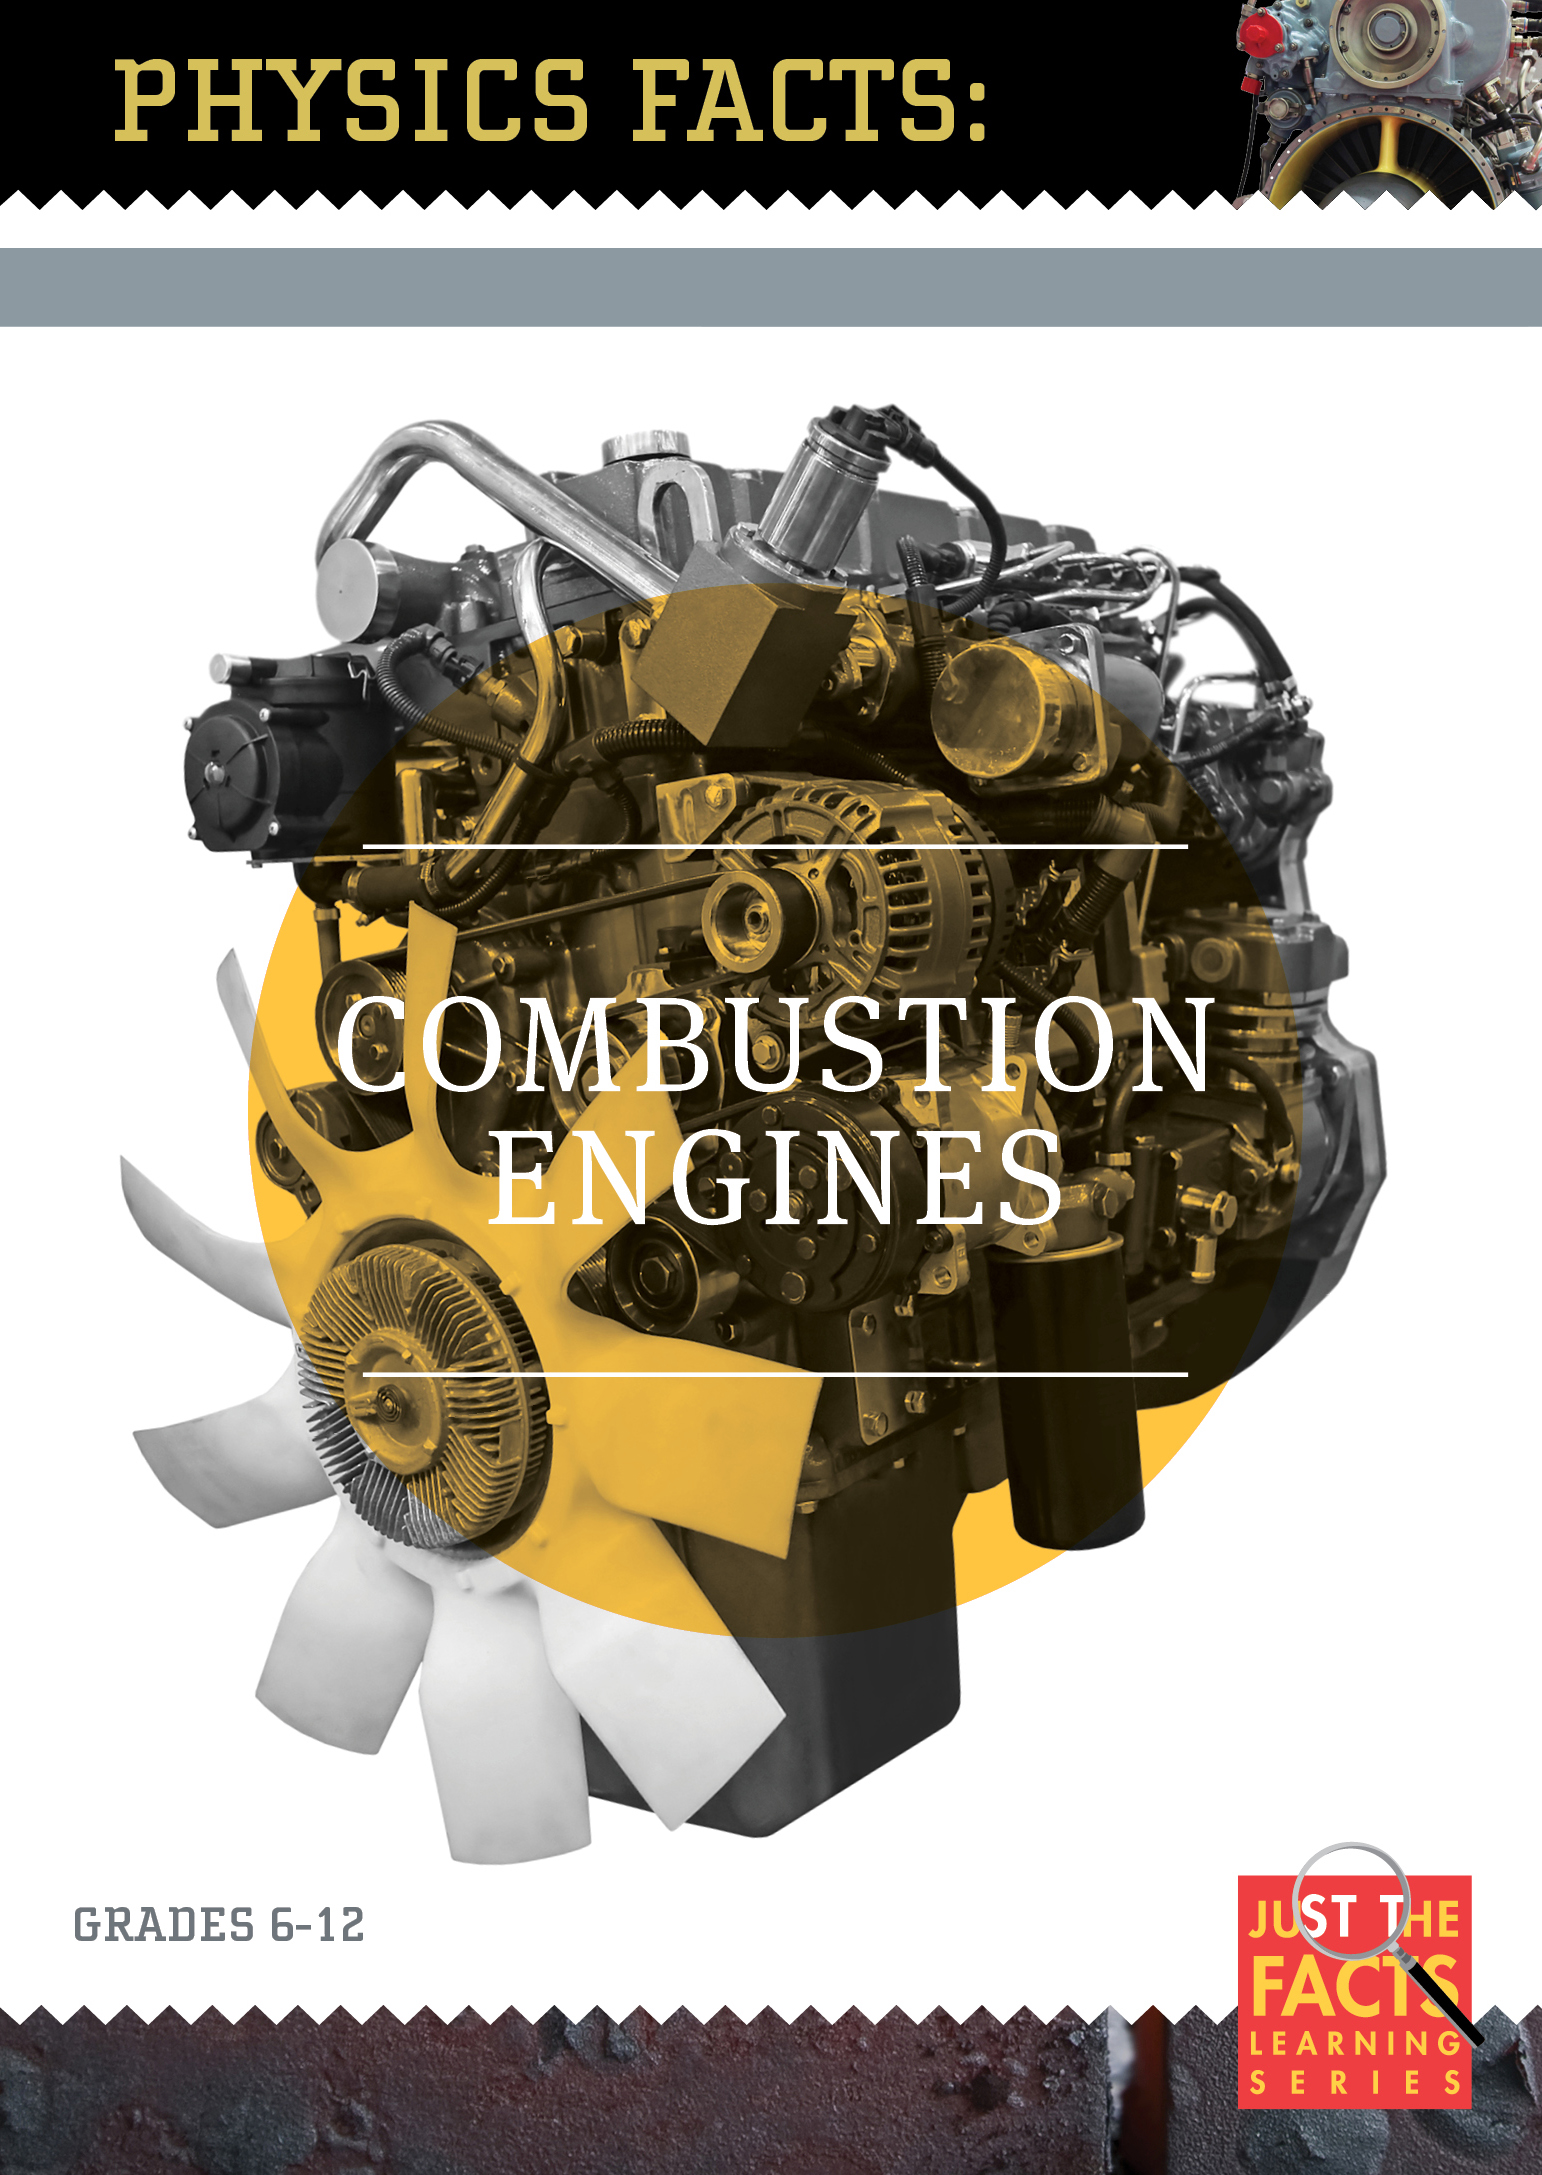 Physics Facts: Combustion Engines